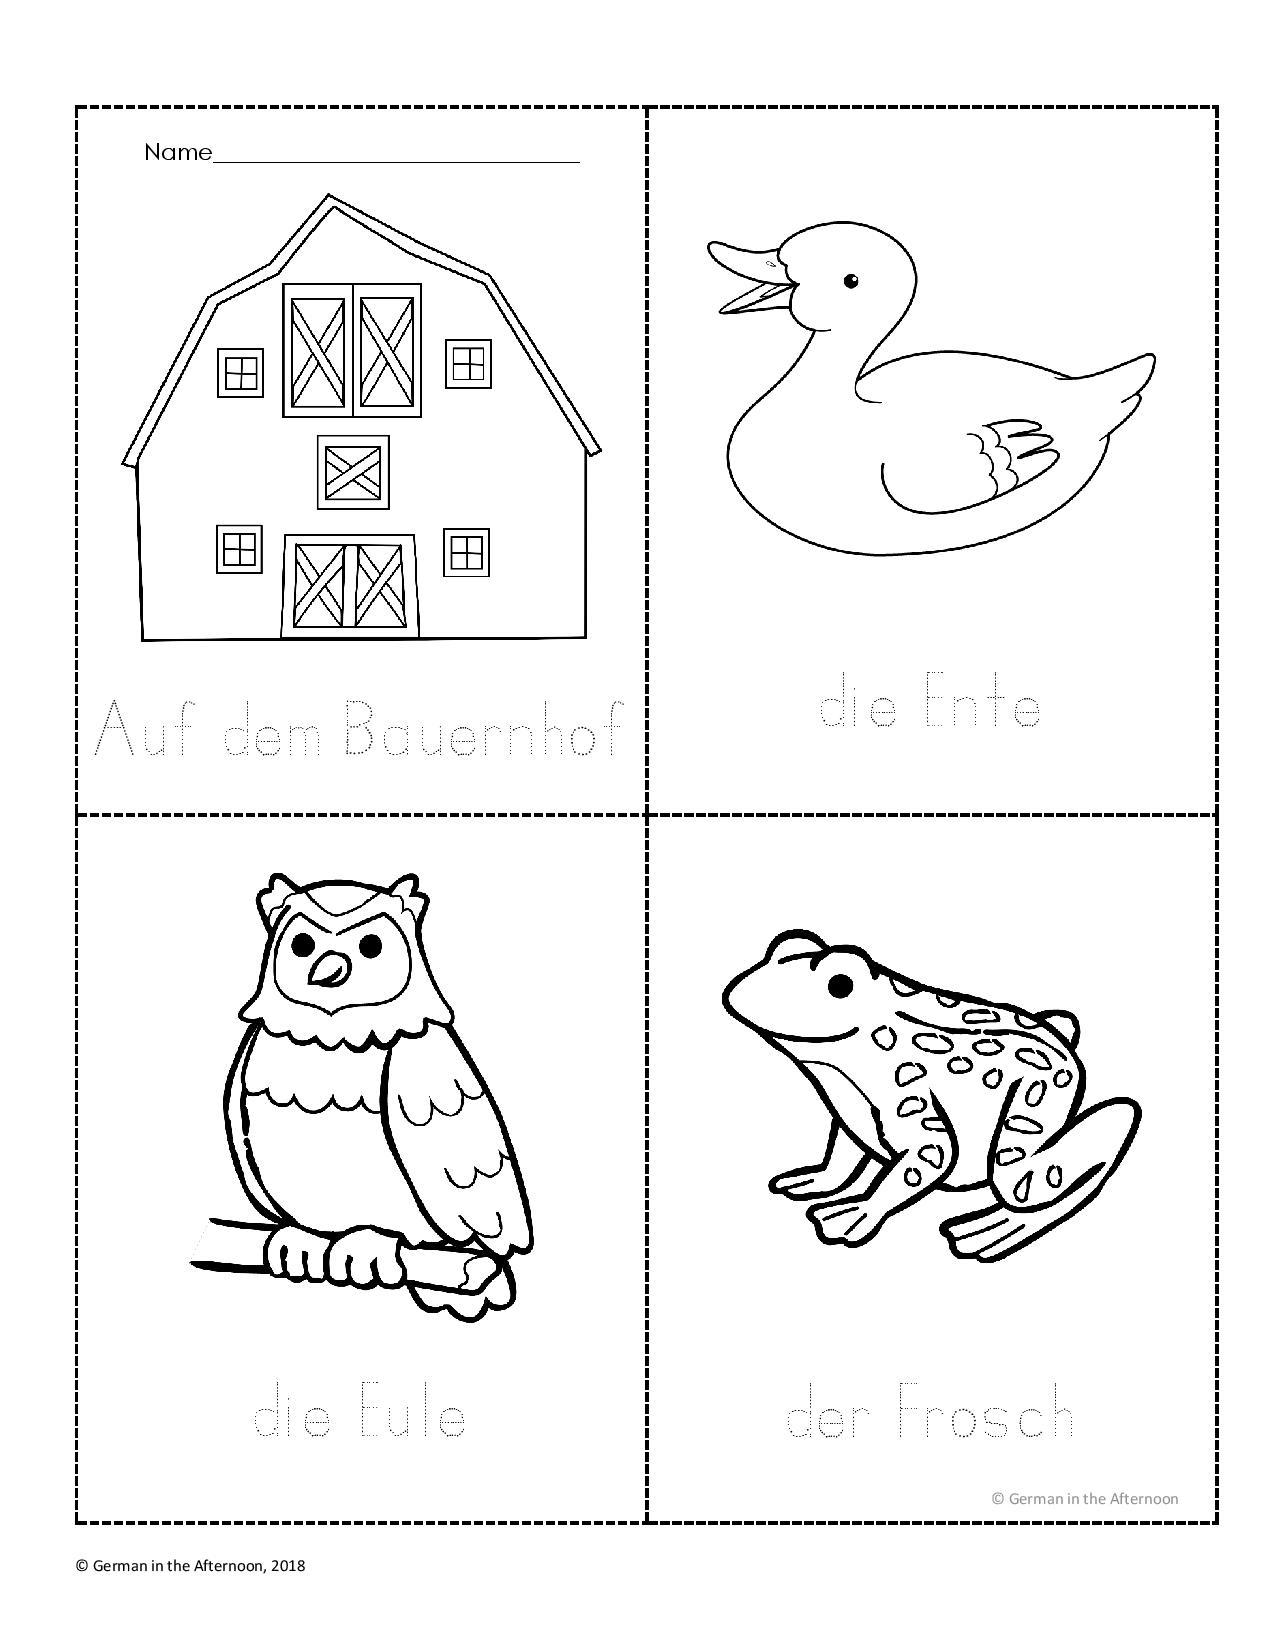 Bauernhof Malbuch – Farm Coloring Book   German in the Afternoon ...